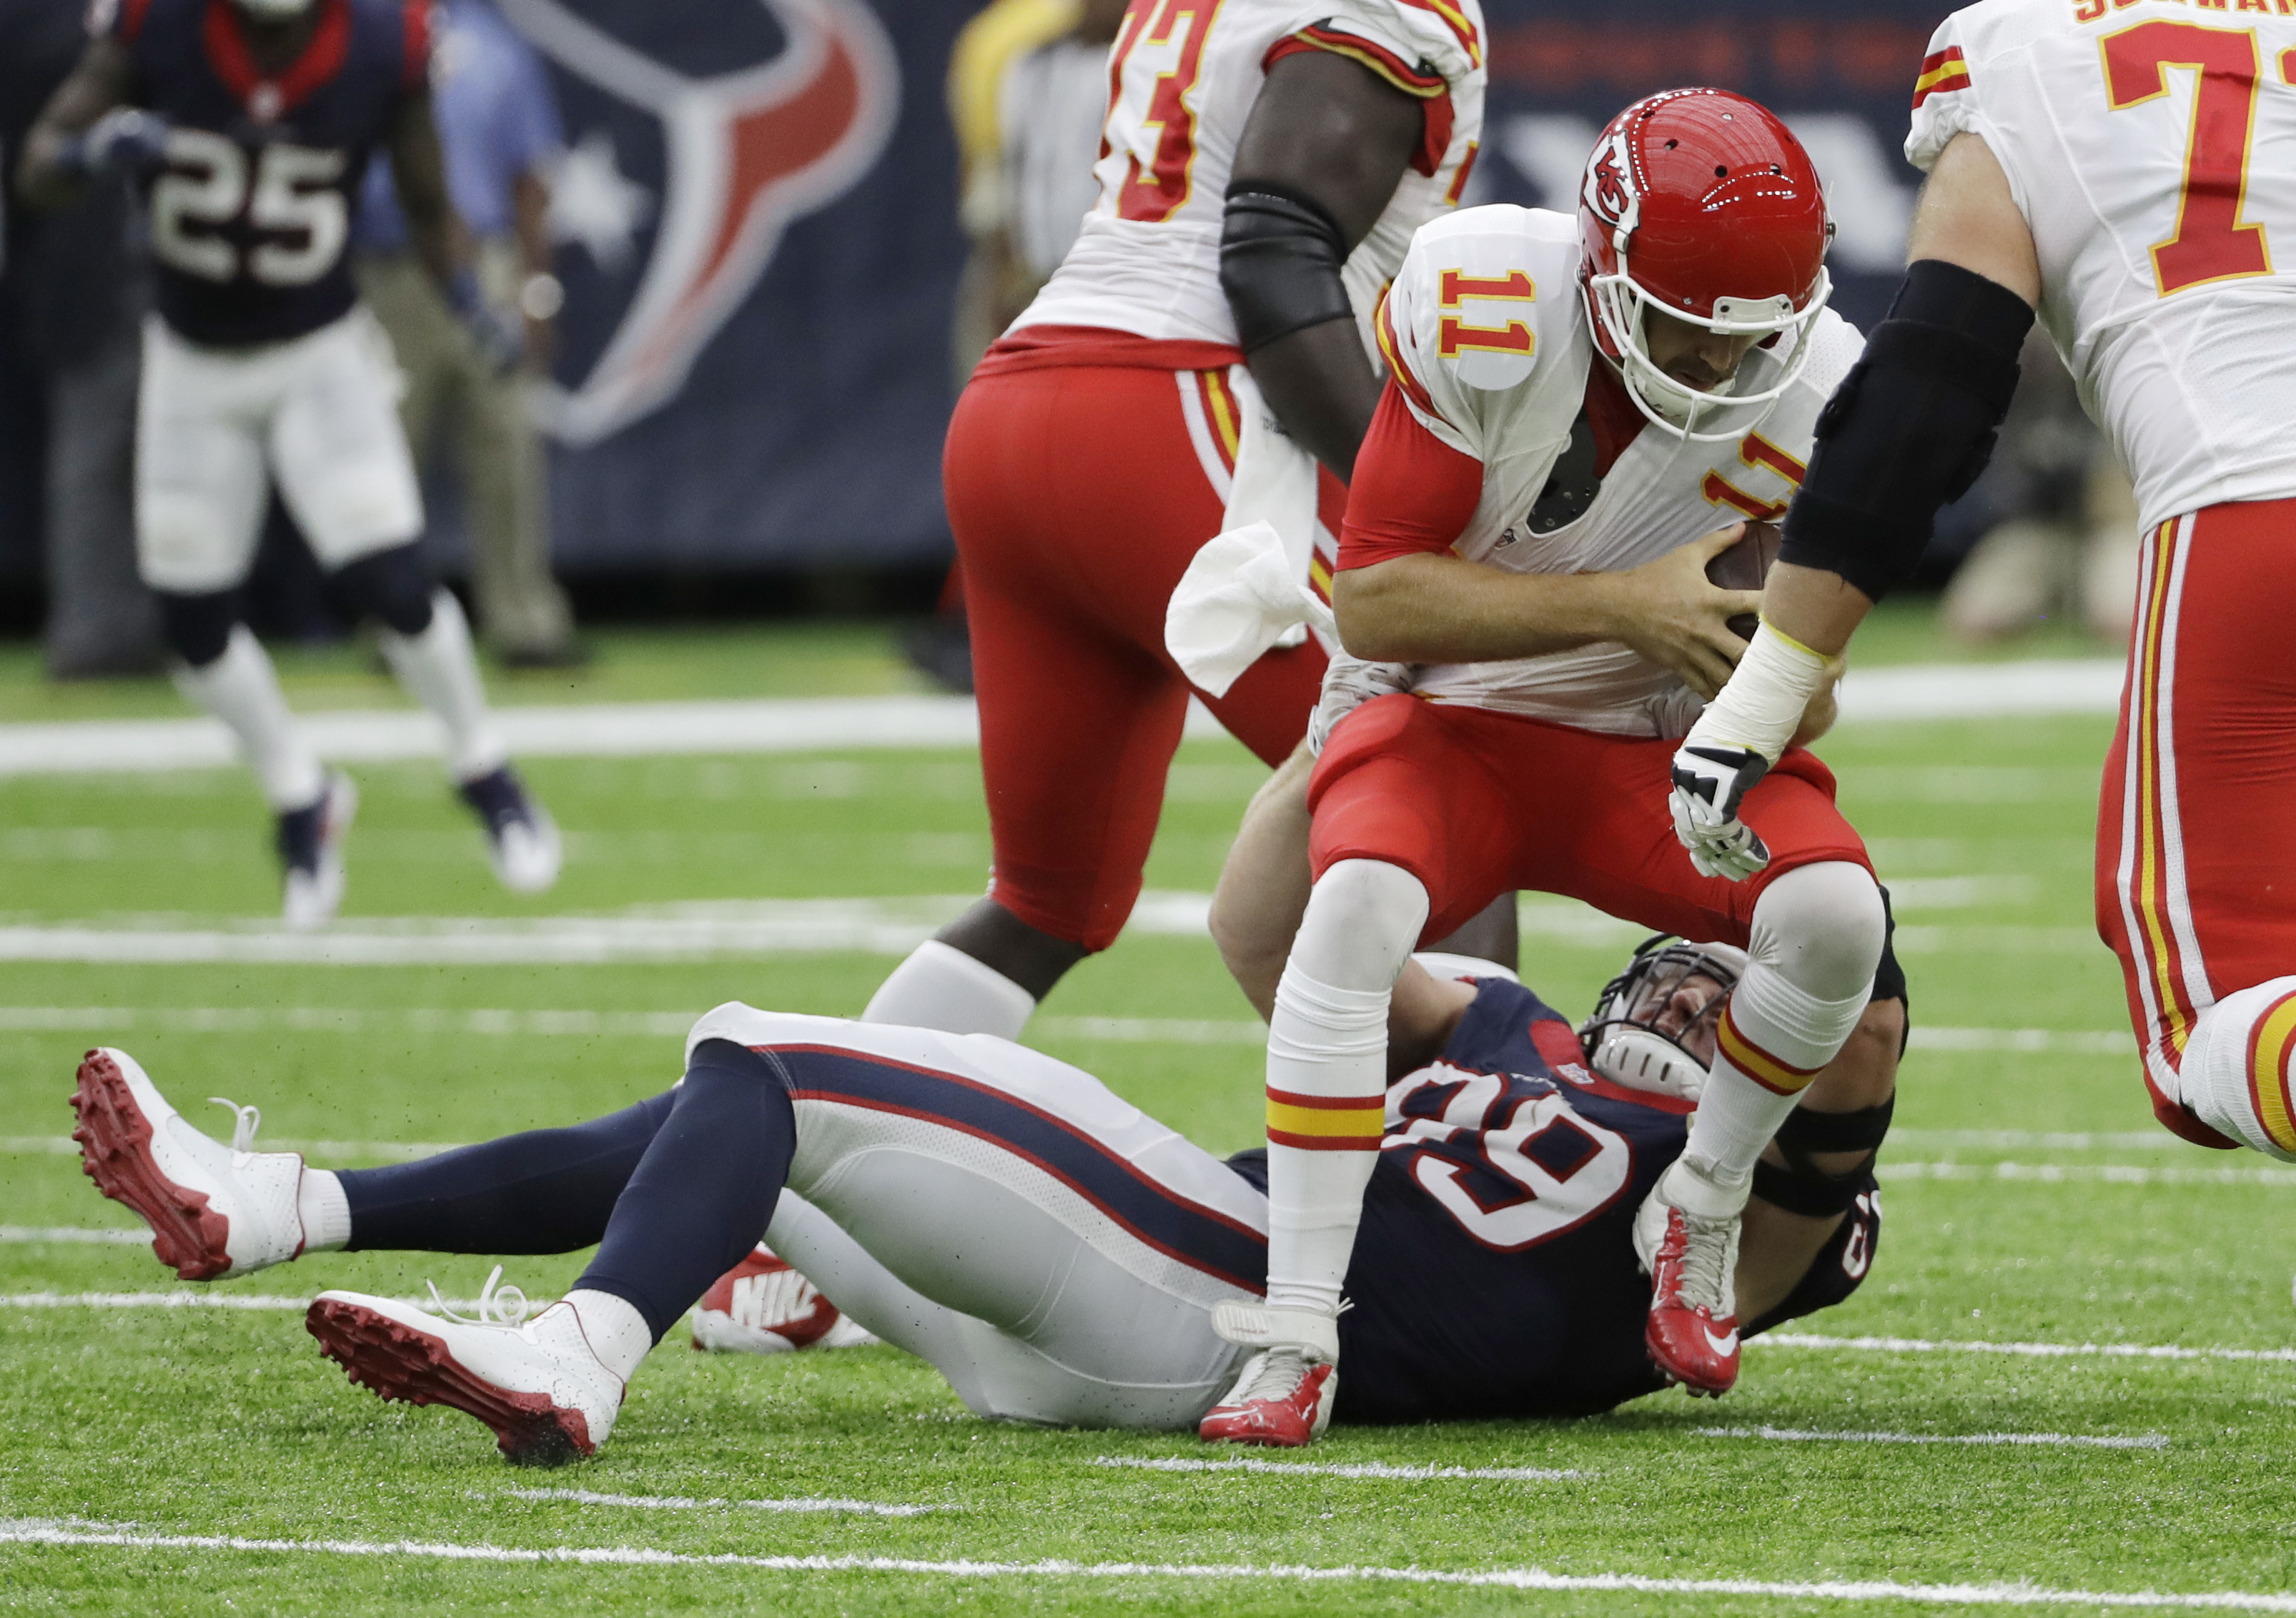 Kansas City Chiefs quarterback Alex Smith (11) is sacked by Houston Texans defensive end J.J. Watt (99) during the first half of an NFL football game Sunday, Sept. 18, 2016, in Houston. (AP Photo/David J. Phillip)